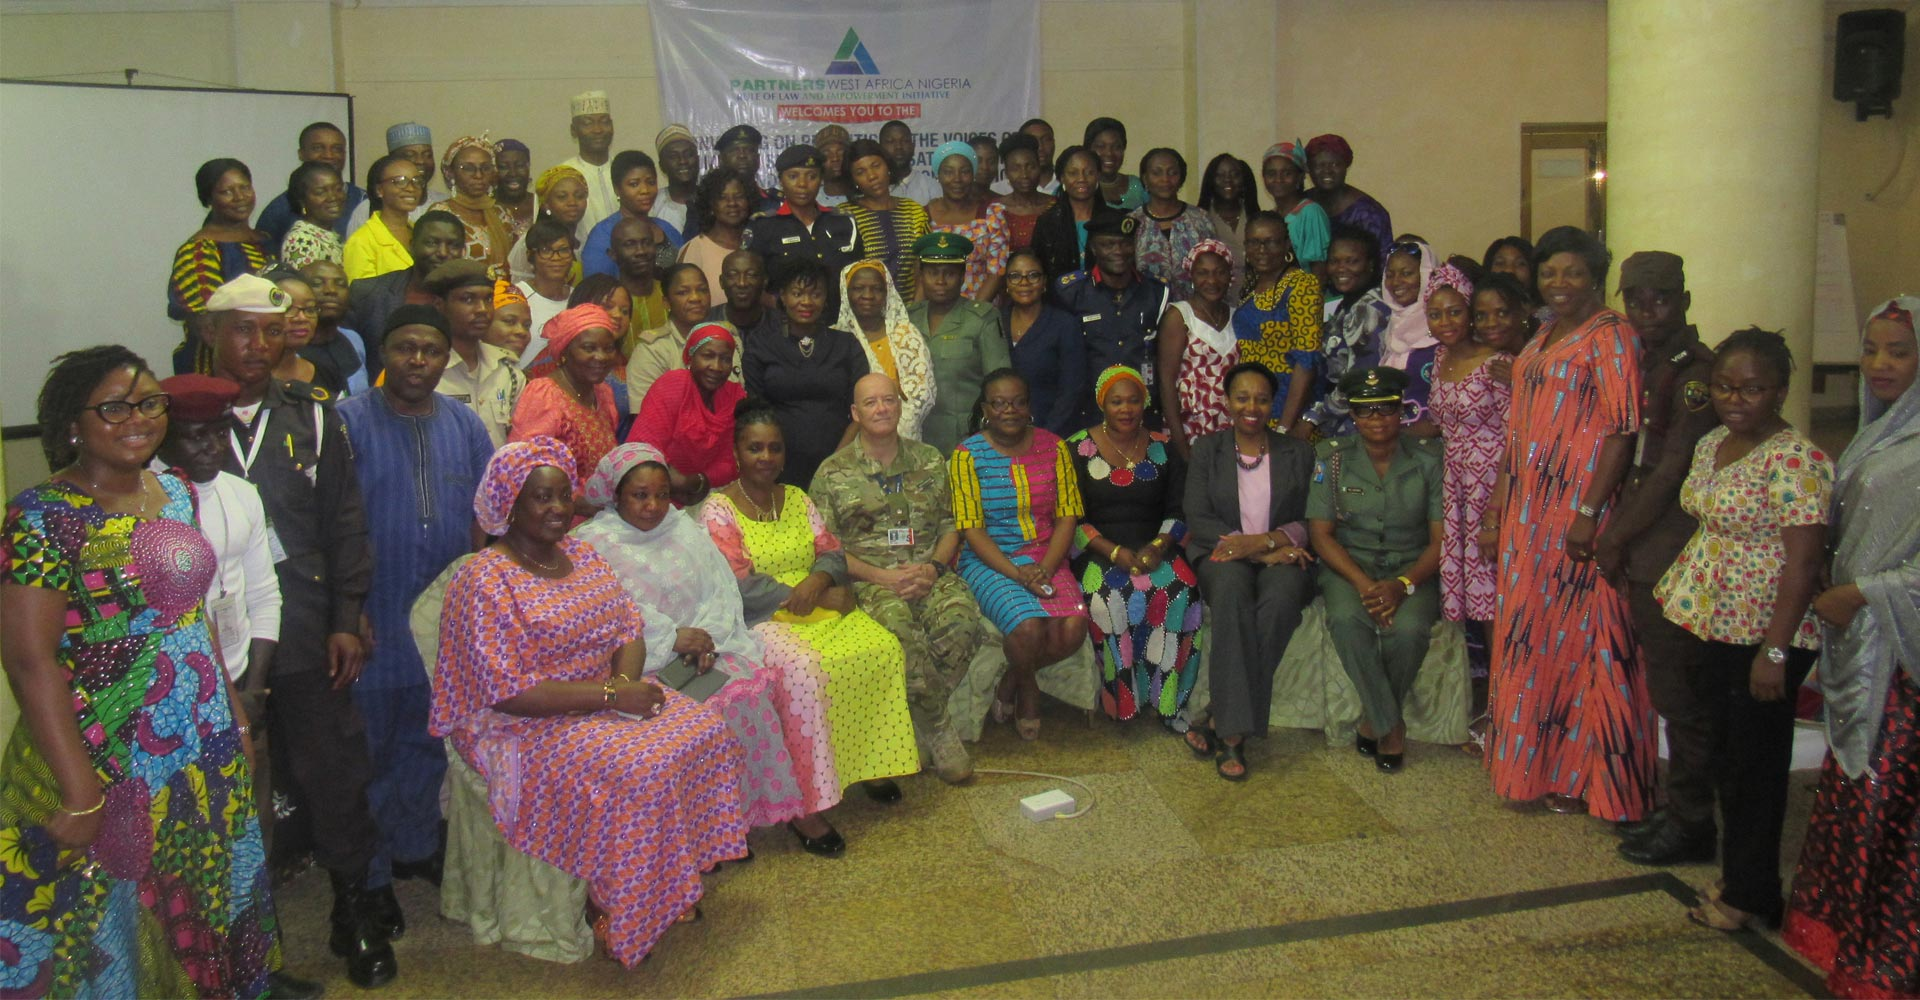 WORKSHOP ON PRIORITIZING THE VOICES OF WOMEN IN SECURITY USING THE SECOND GENERATION NATIONAL ACTION PLAN (2017-2020)